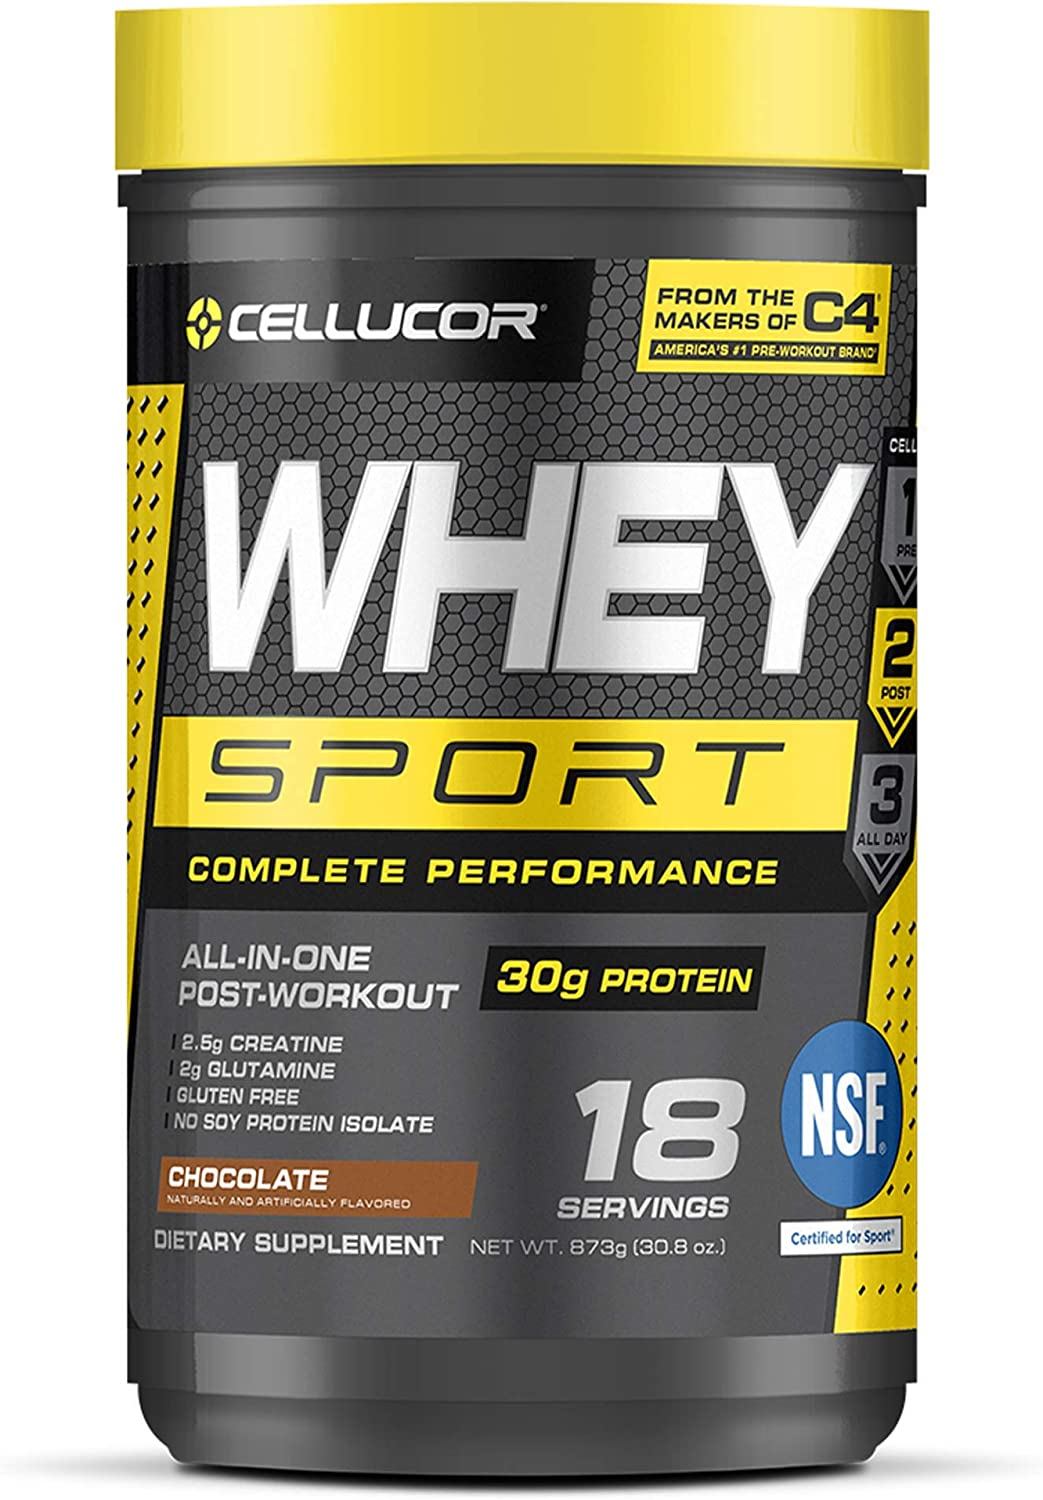 Cellucor Whey Sport Factory outlet Protein Powder Chocolate Reco Workout Fixed price for sale Post